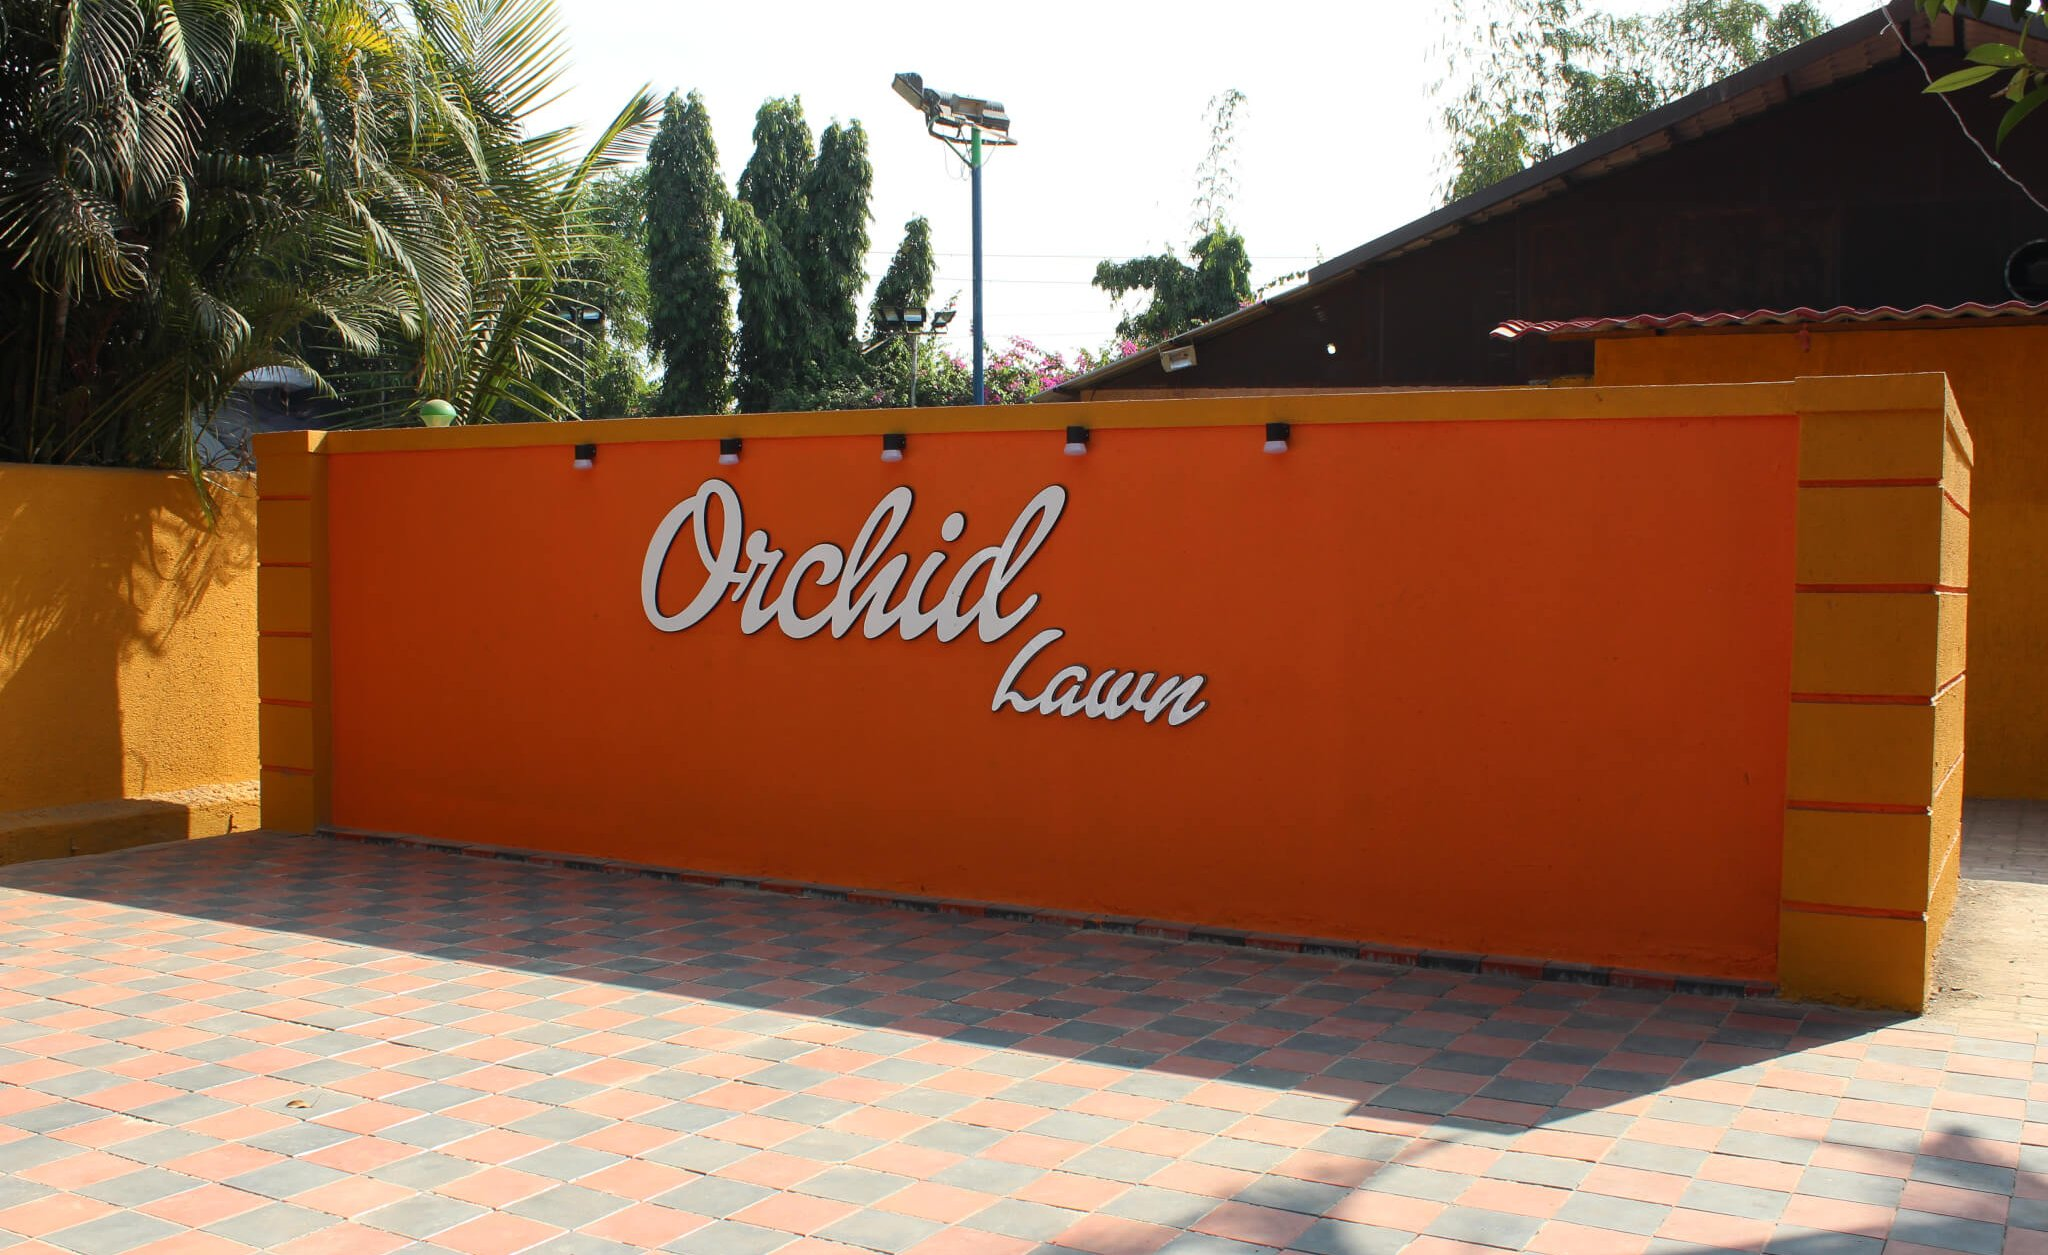 Orchid Lawn